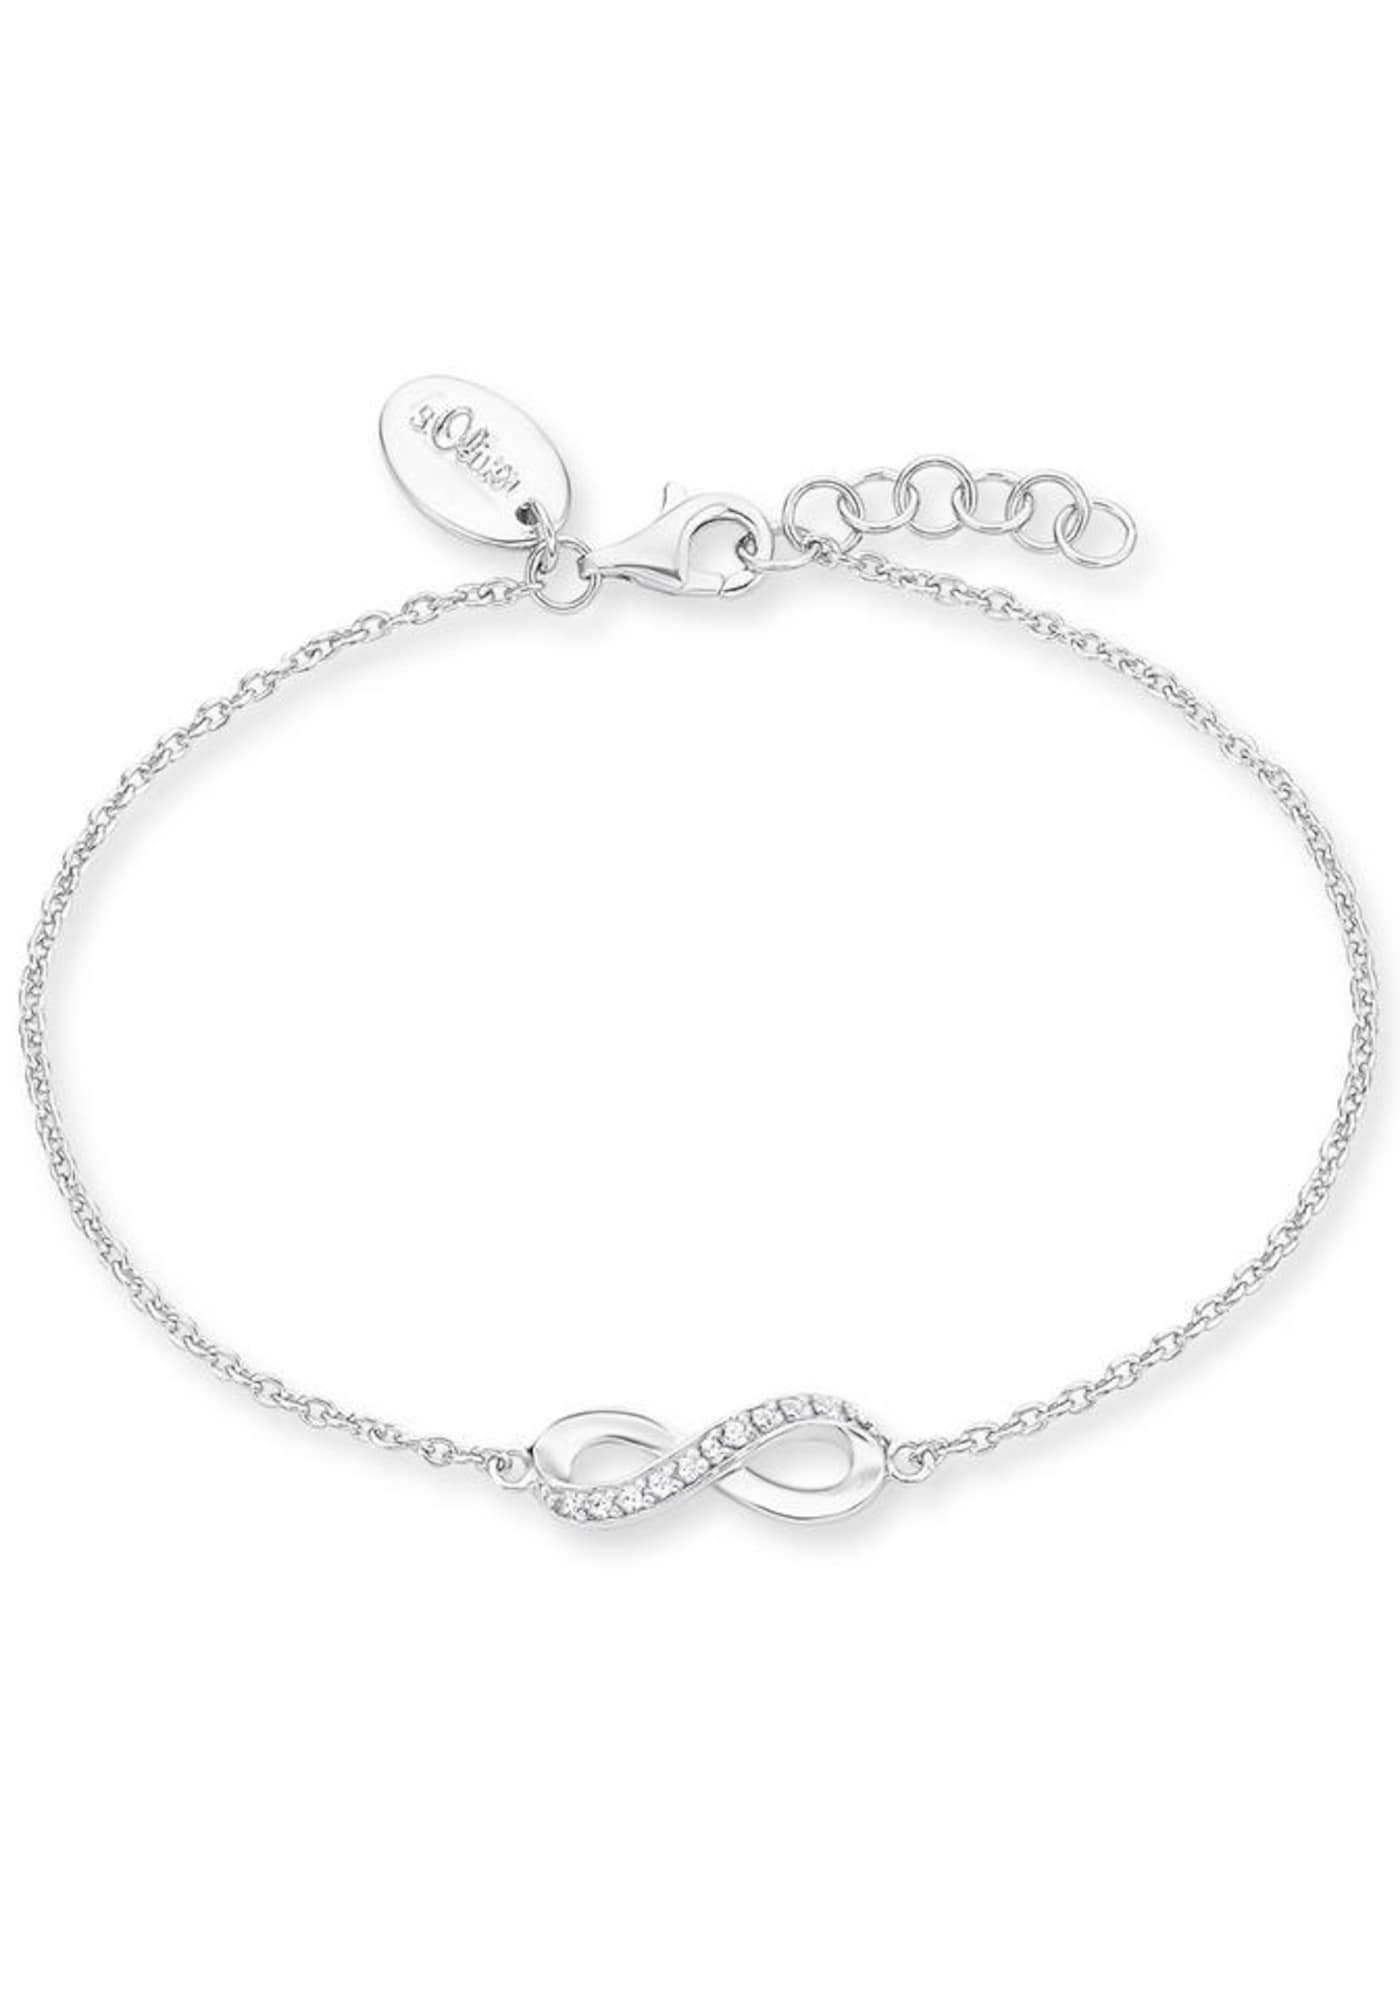 s.oliver red label - Armband ´Infinity, 2012529´